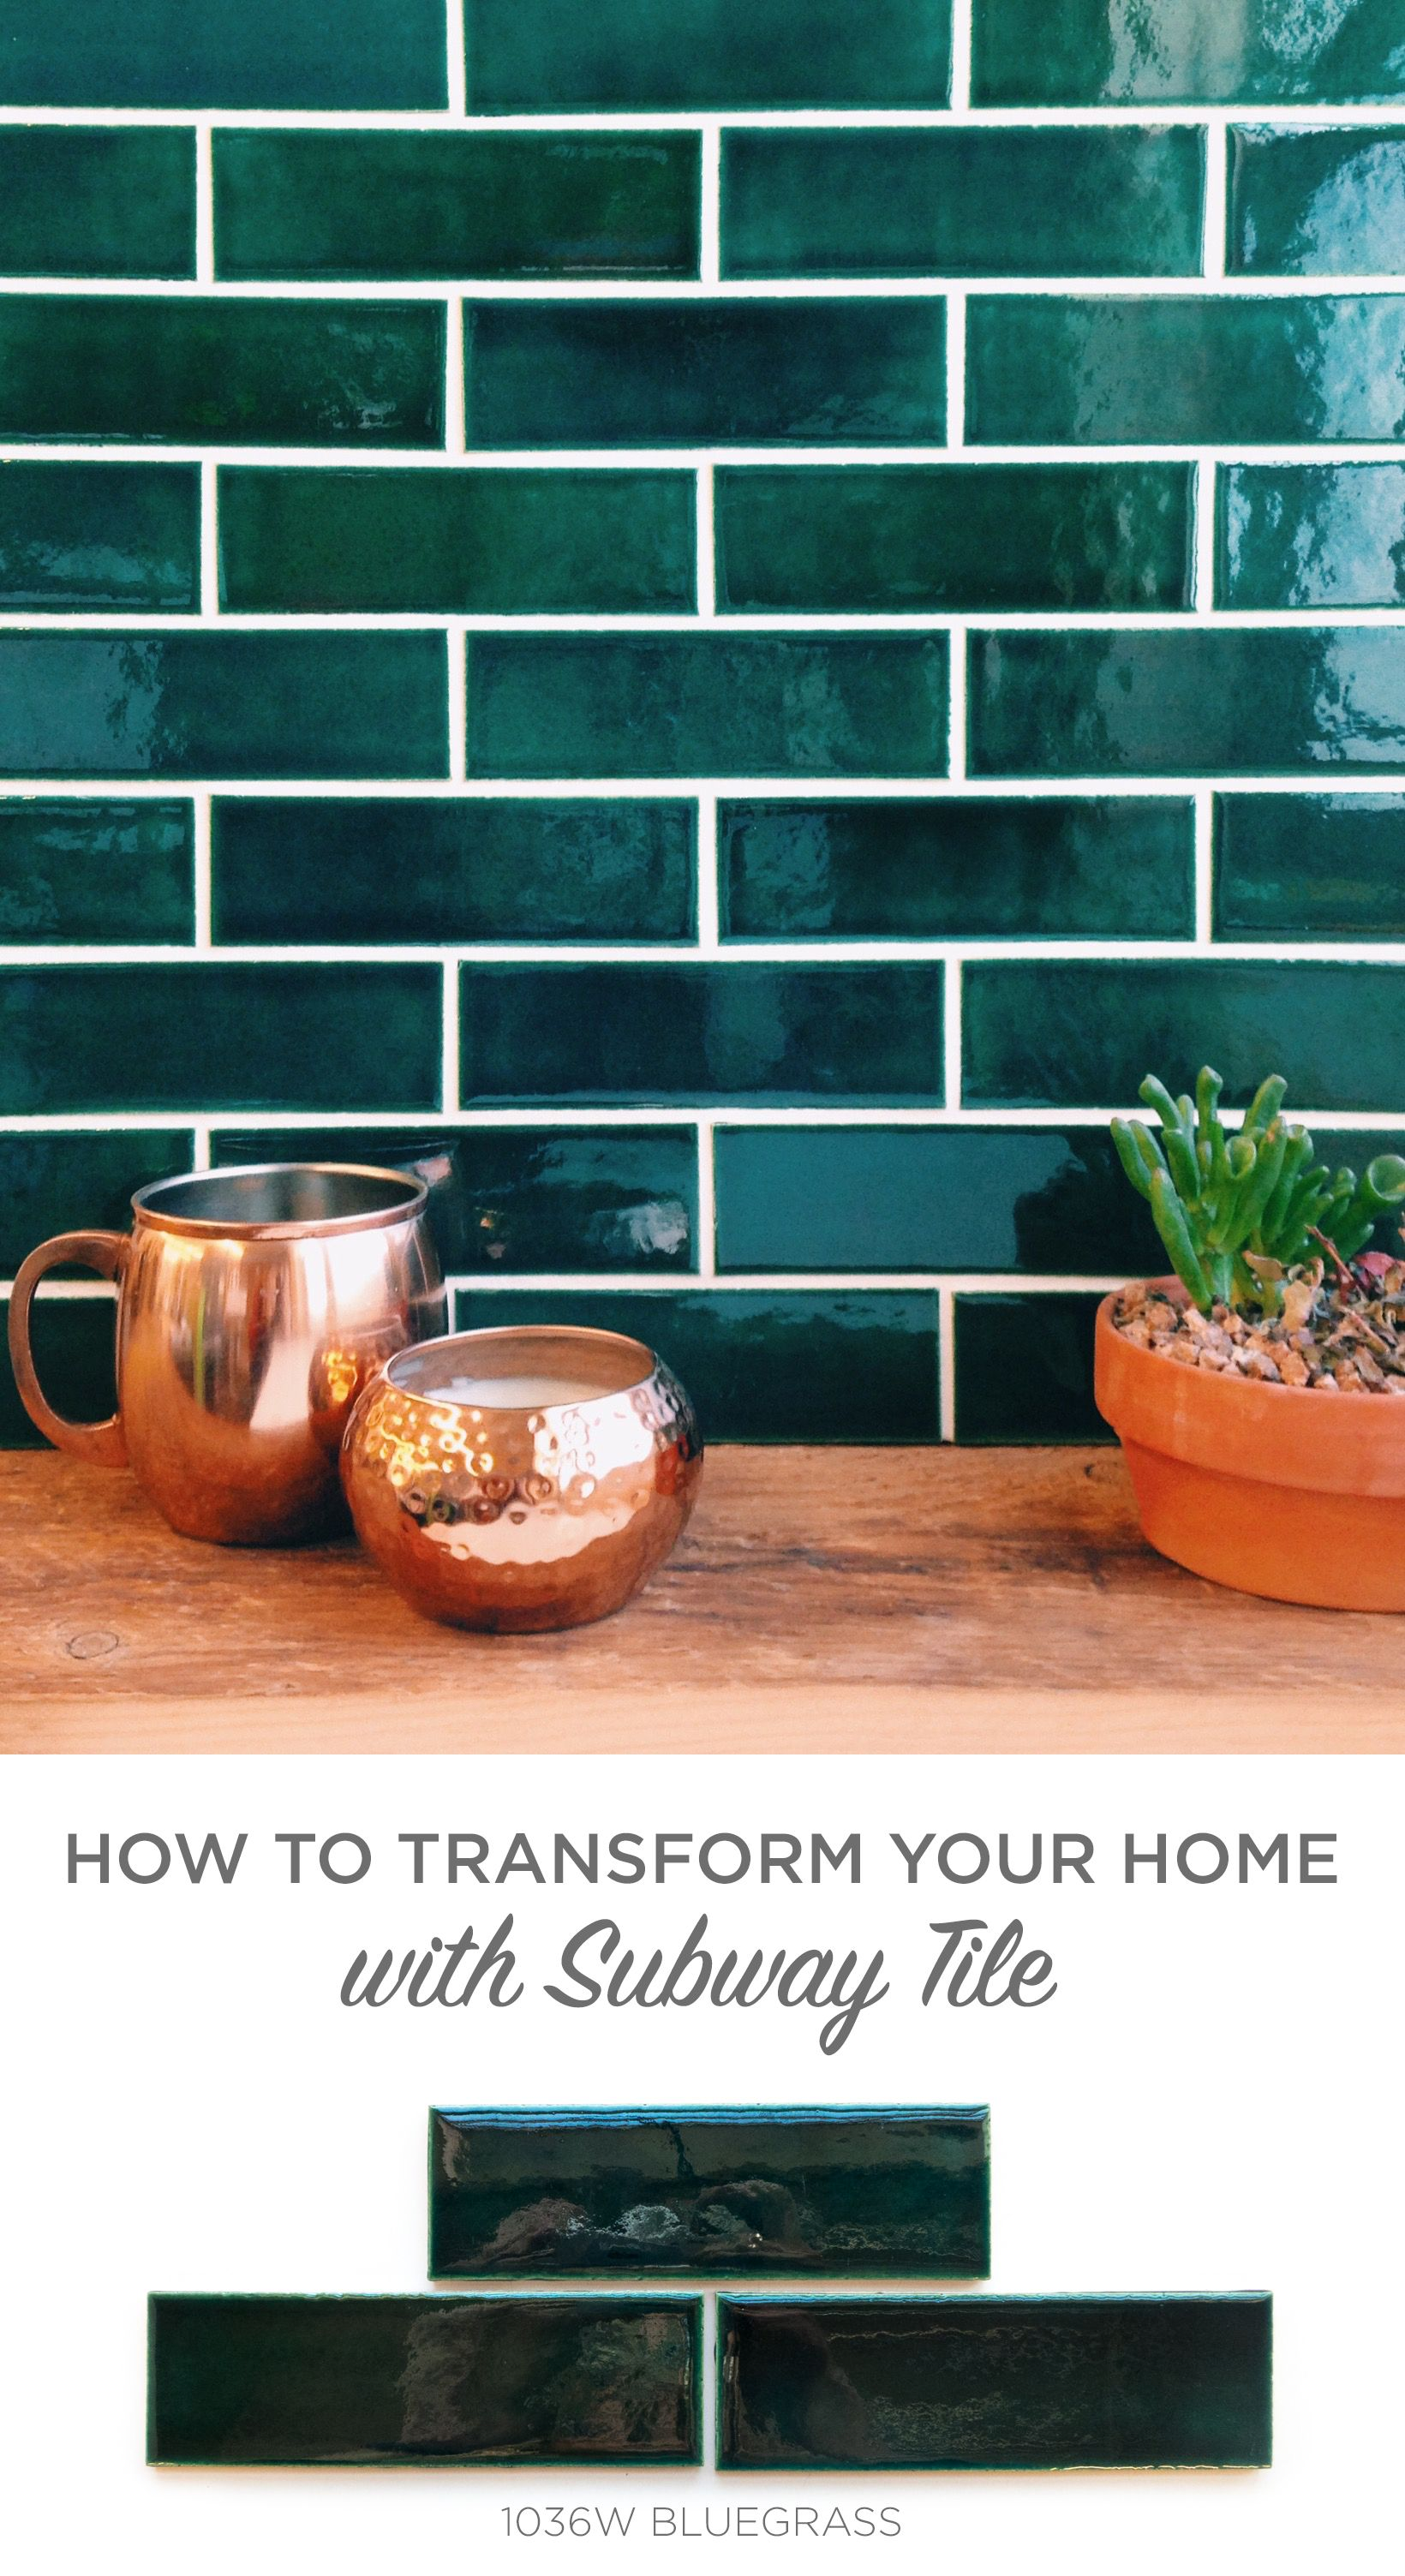 Subway tile to swoon over lose the white and use bluegrass for a subway tile to swoon over lose the white and use bluegrass for a rich and dailygadgetfo Image collections